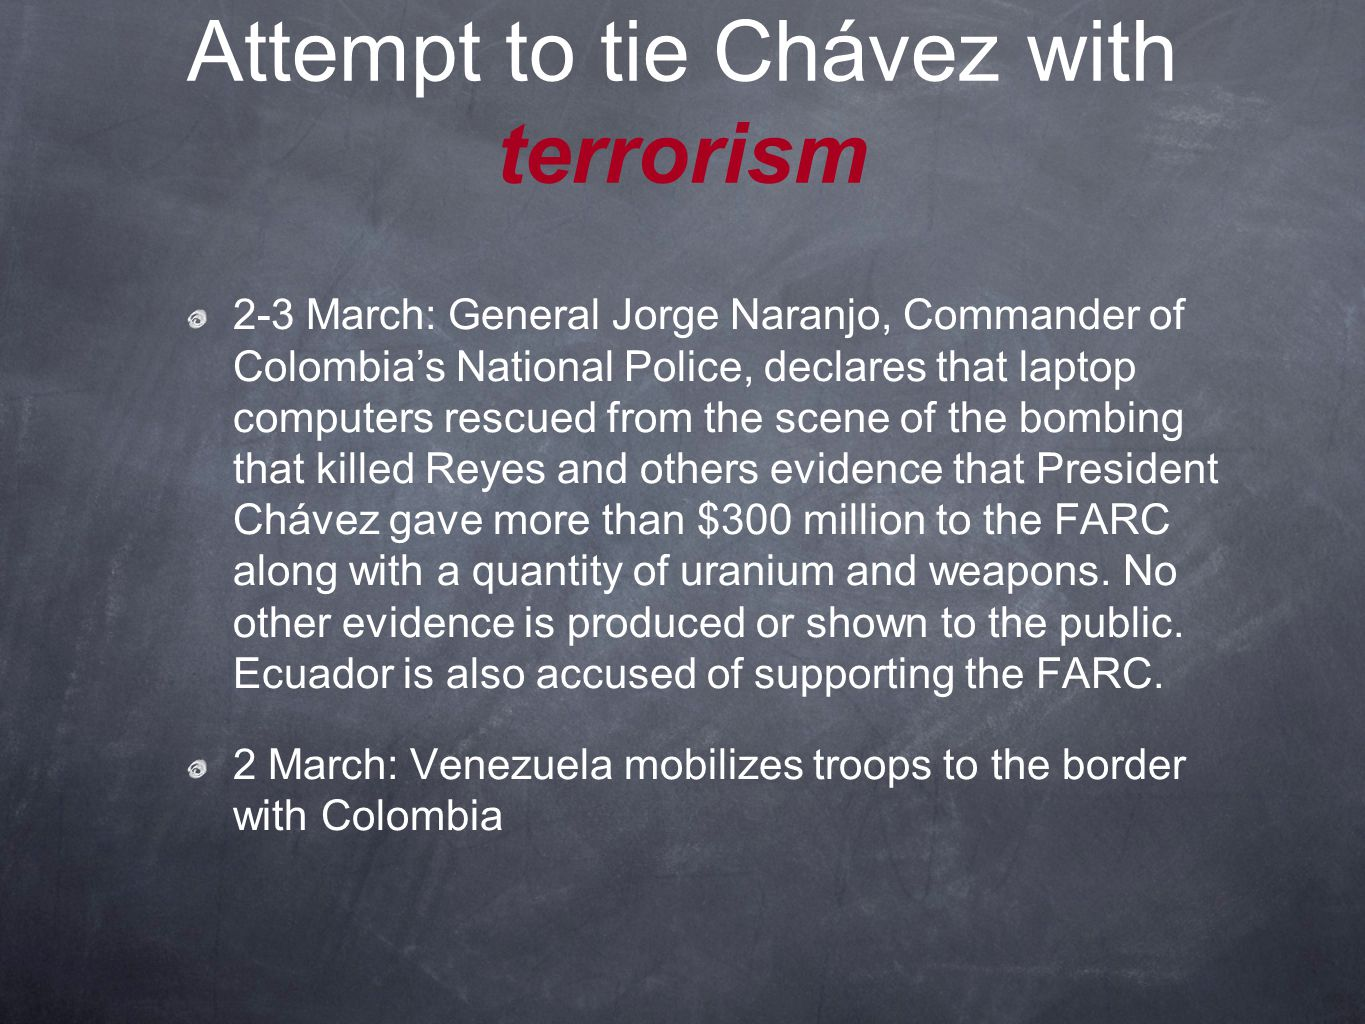 Attempt to tie Chávez with terrorism 2-3 March: General Jorge Naranjo, Commander of Colombia's National Police, declares that laptop computers rescued from the scene of the bombing that killed Reyes and others evidence that President Chávez gave more than $300 million to the FARC along with a quantity of uranium and weapons.